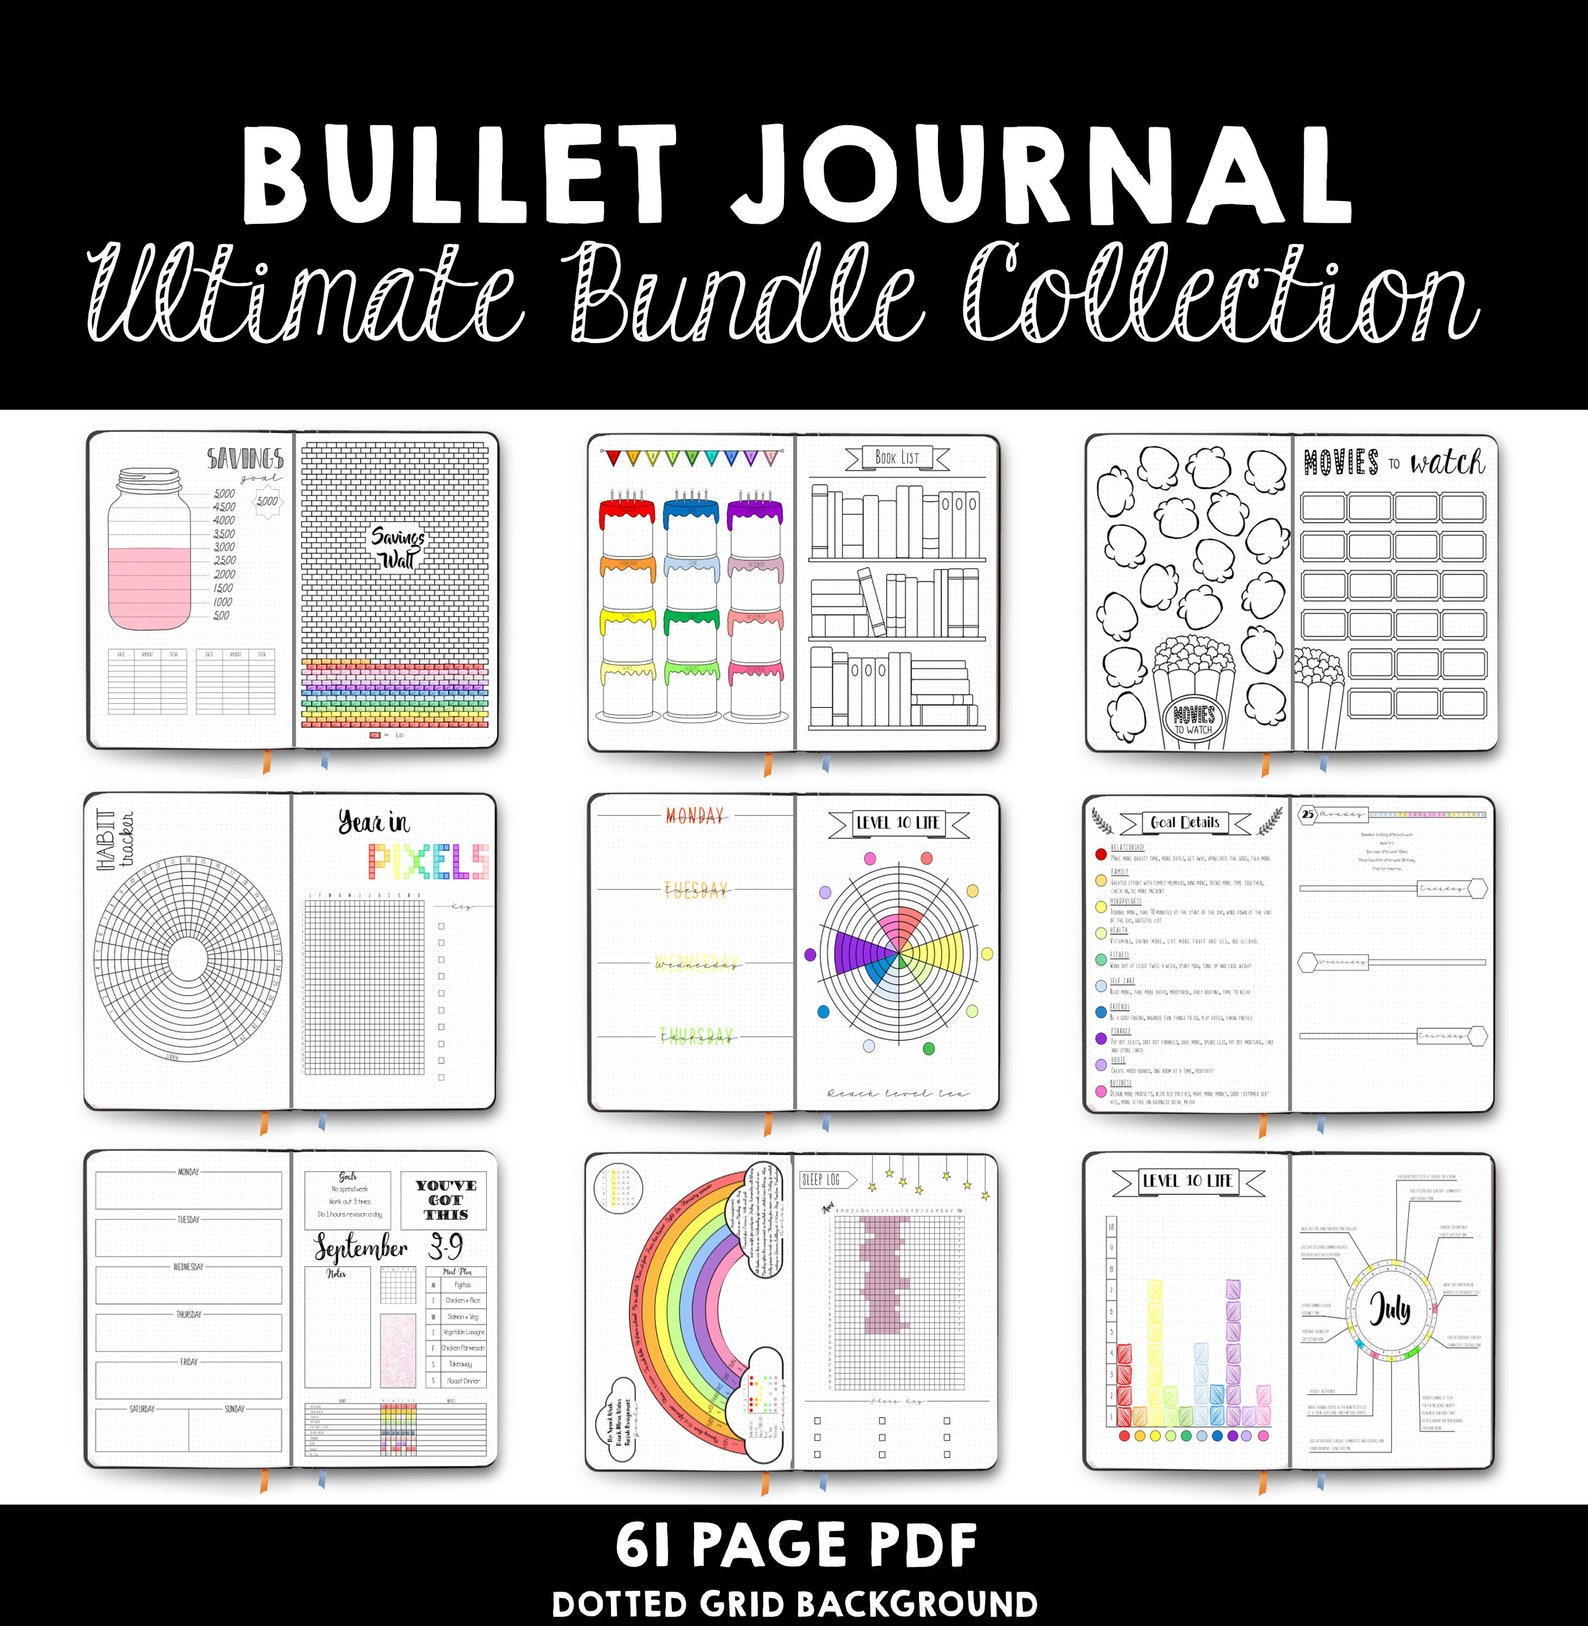 Bullet Journal - Ultimate Collection